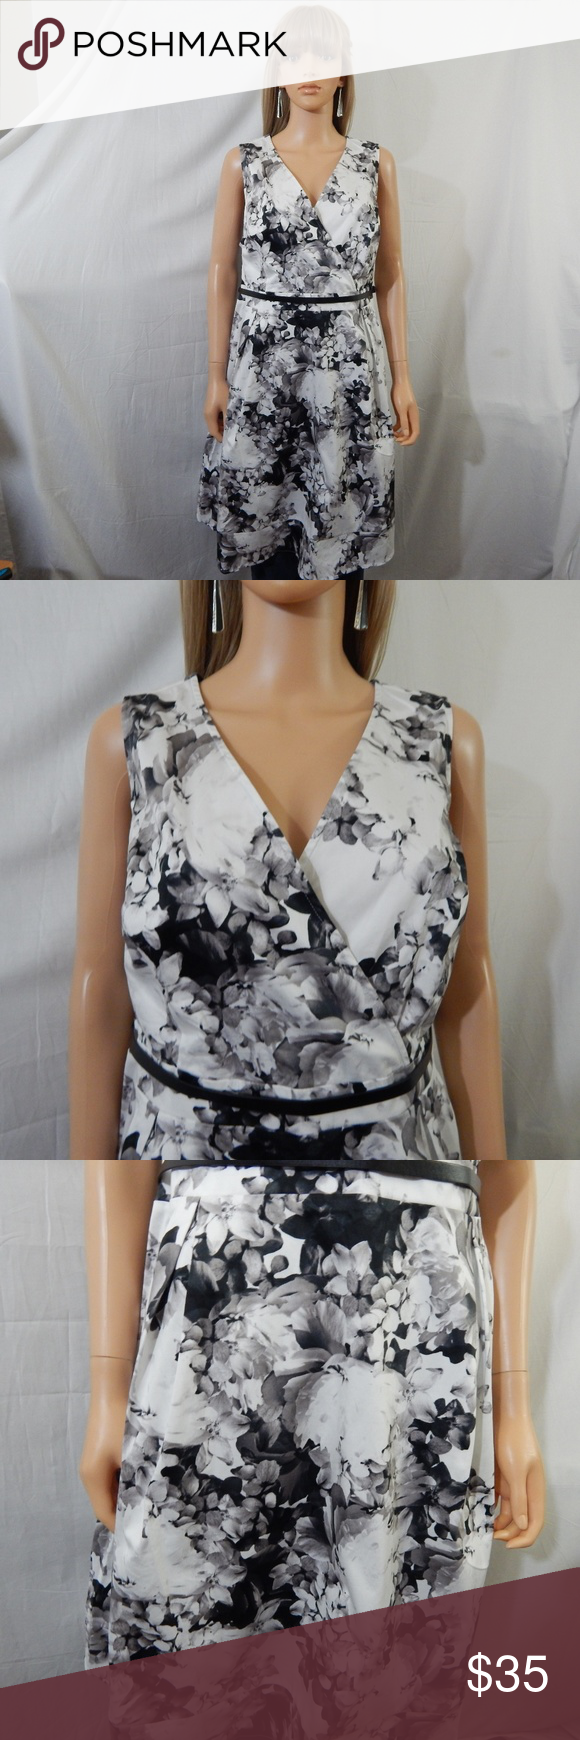 4dc9c2a71e0 Spotted while shopping on Poshmark  NWT Women Lane Bryant Size 18 Floral  Dress NEW!  poshmark  fashion  shopping  style  Lane Bryant  Dresses    Skirts